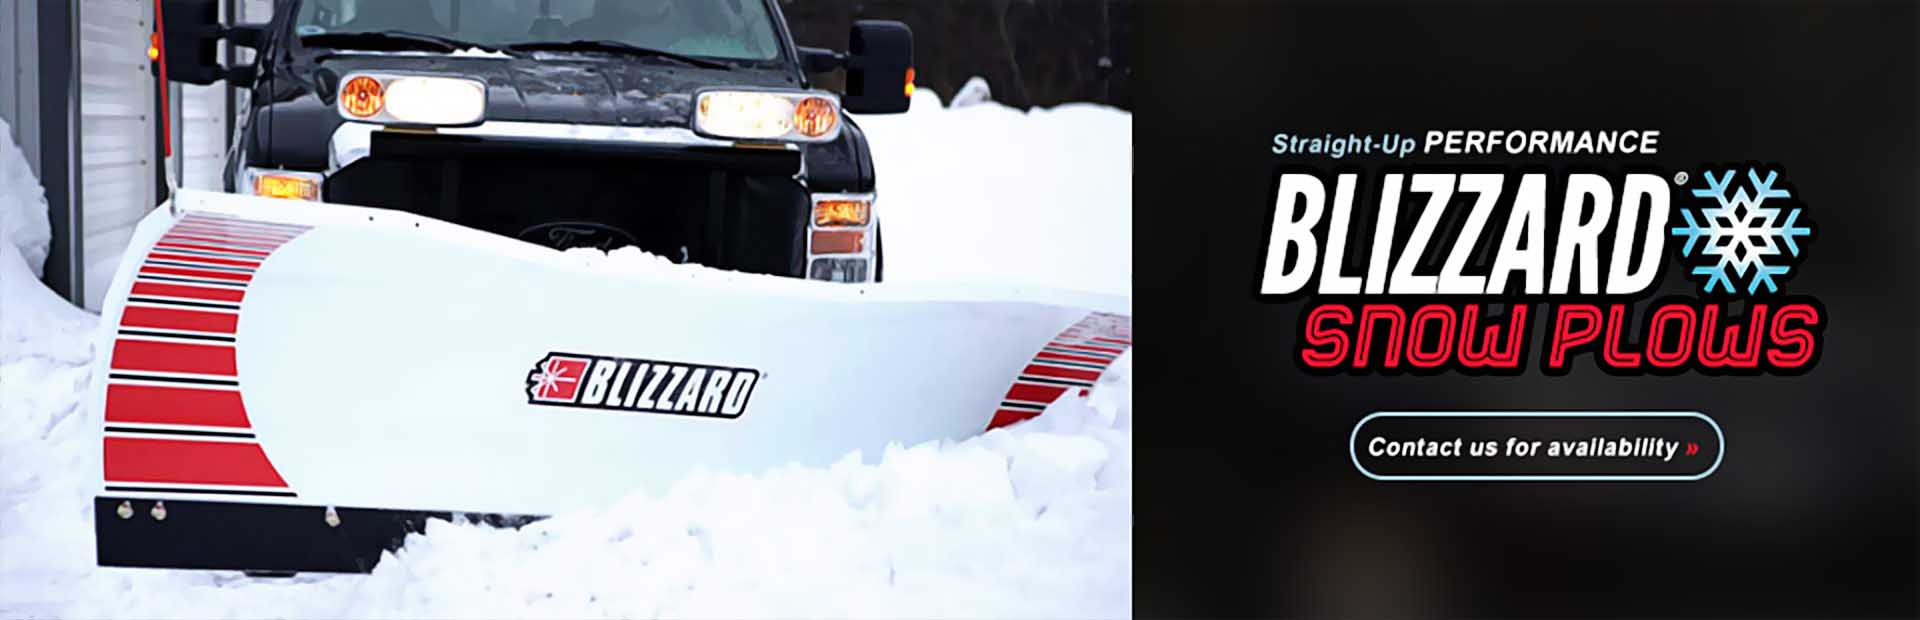 BLIZZARD® Snow Plows: Contact us for availability.